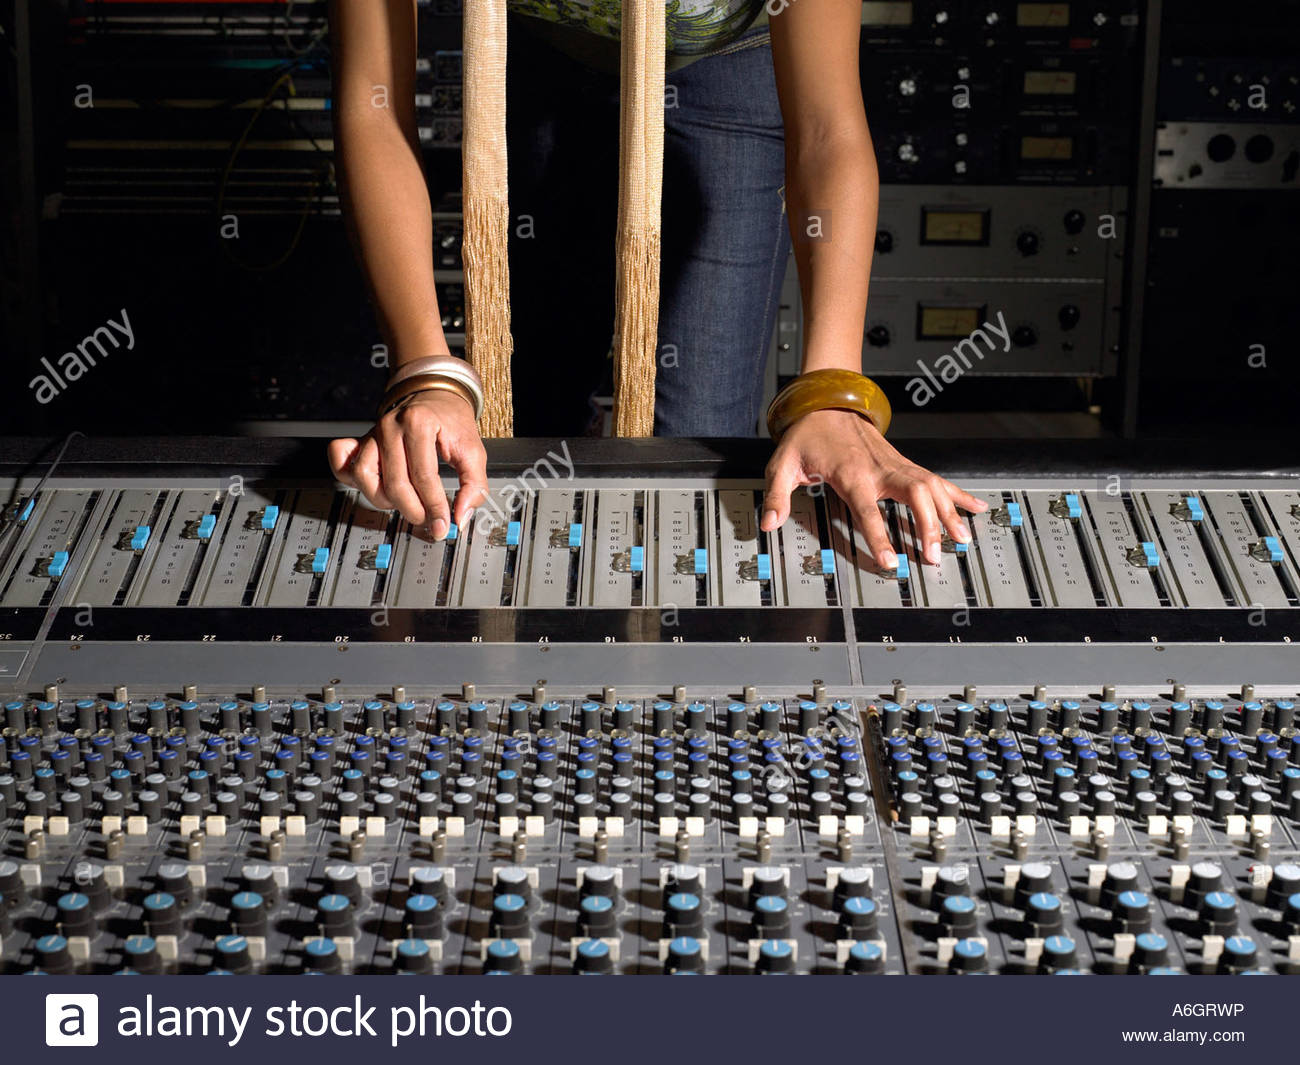 Woman using mixing desk Stock Photo